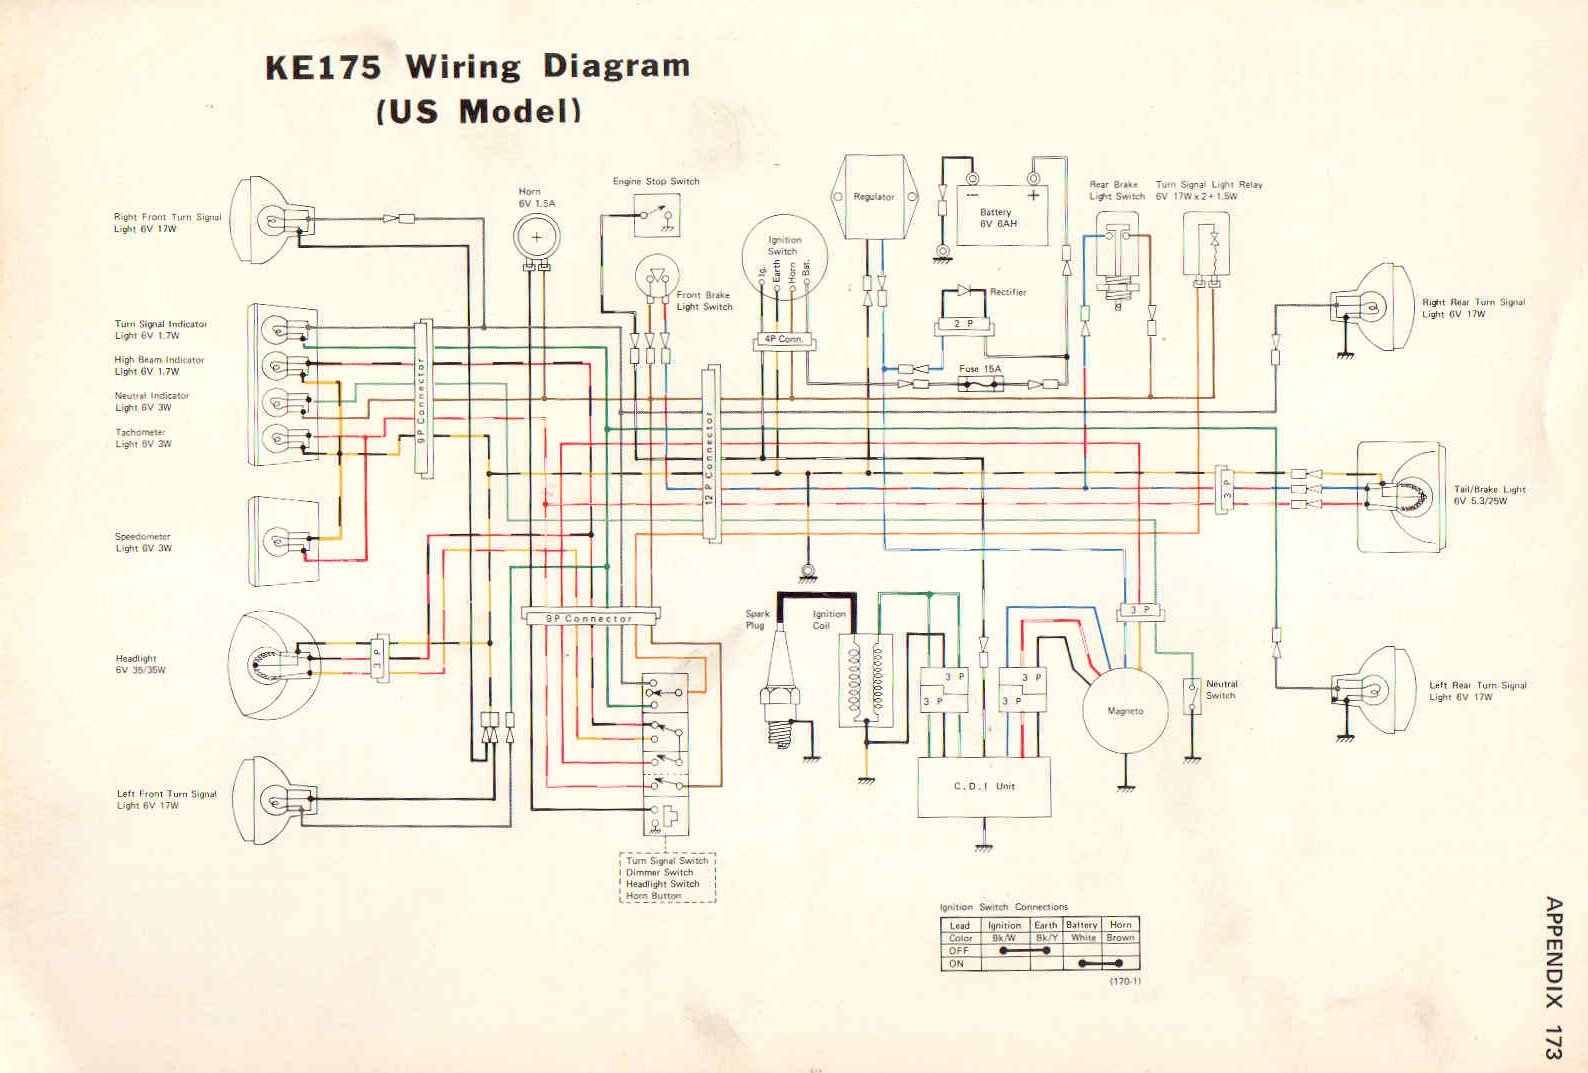 76 77 78 KE175 Wiring Diagram 1981 kawasaki wiring diagram wiring diagrams  at eliteediting.co